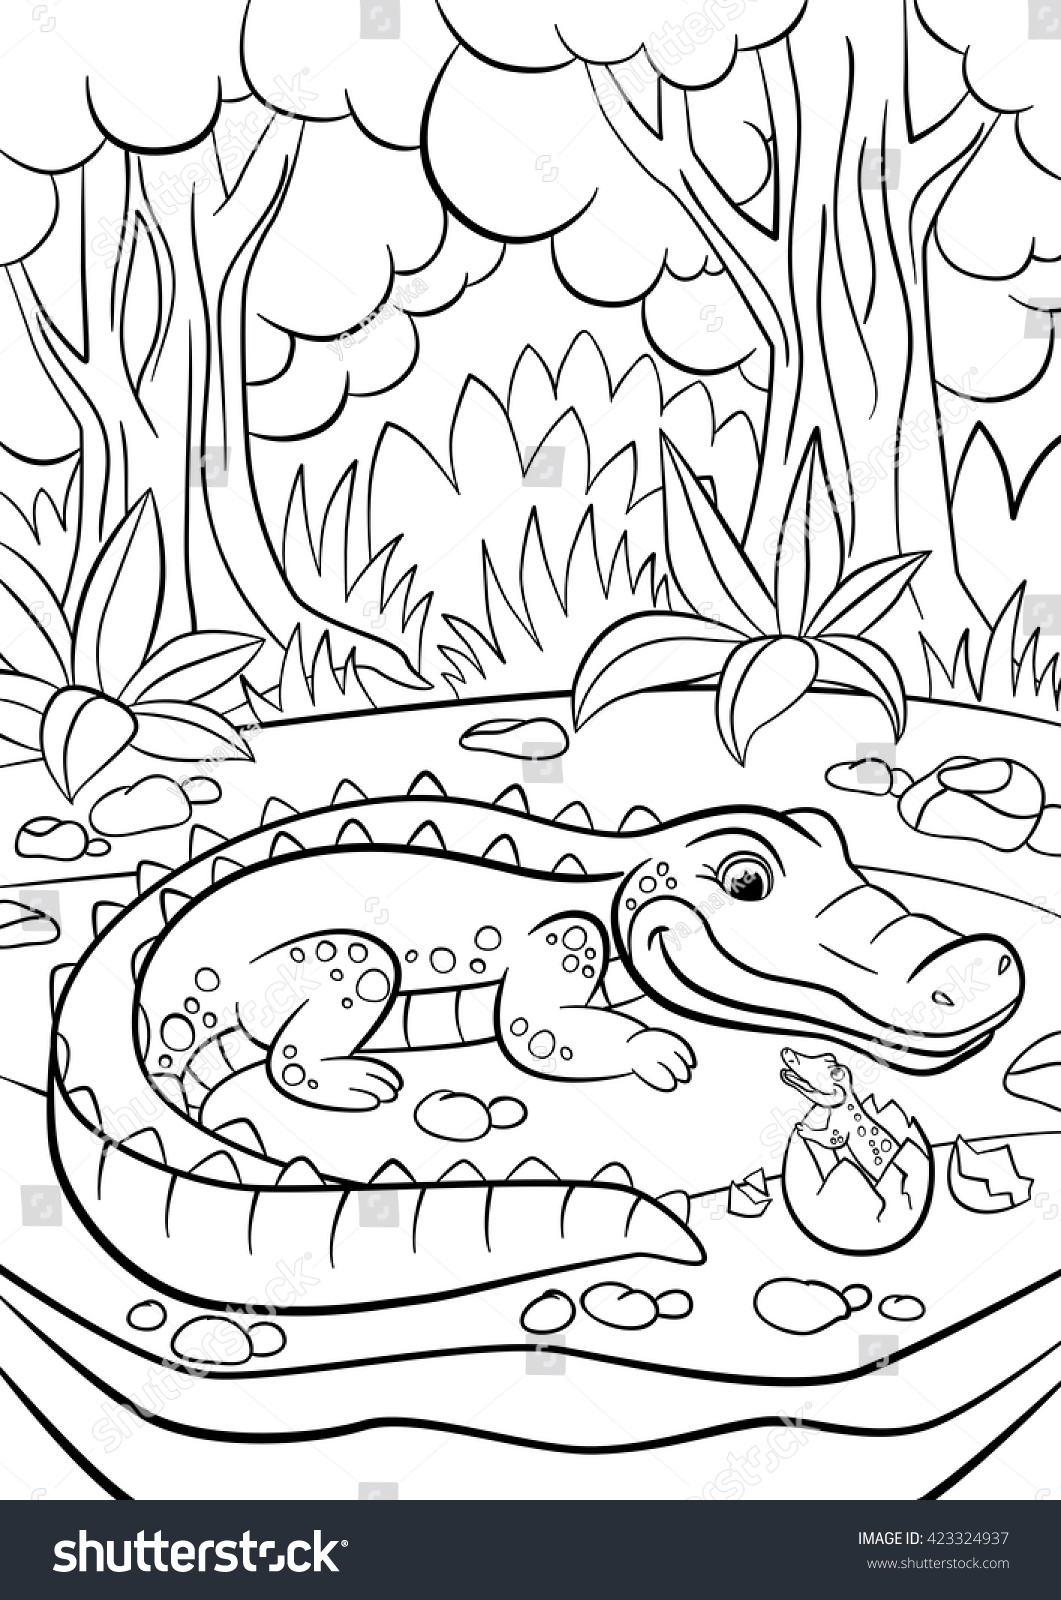 Coloring Pages Animals Mother Alligator Looks Stock Vector HD ...